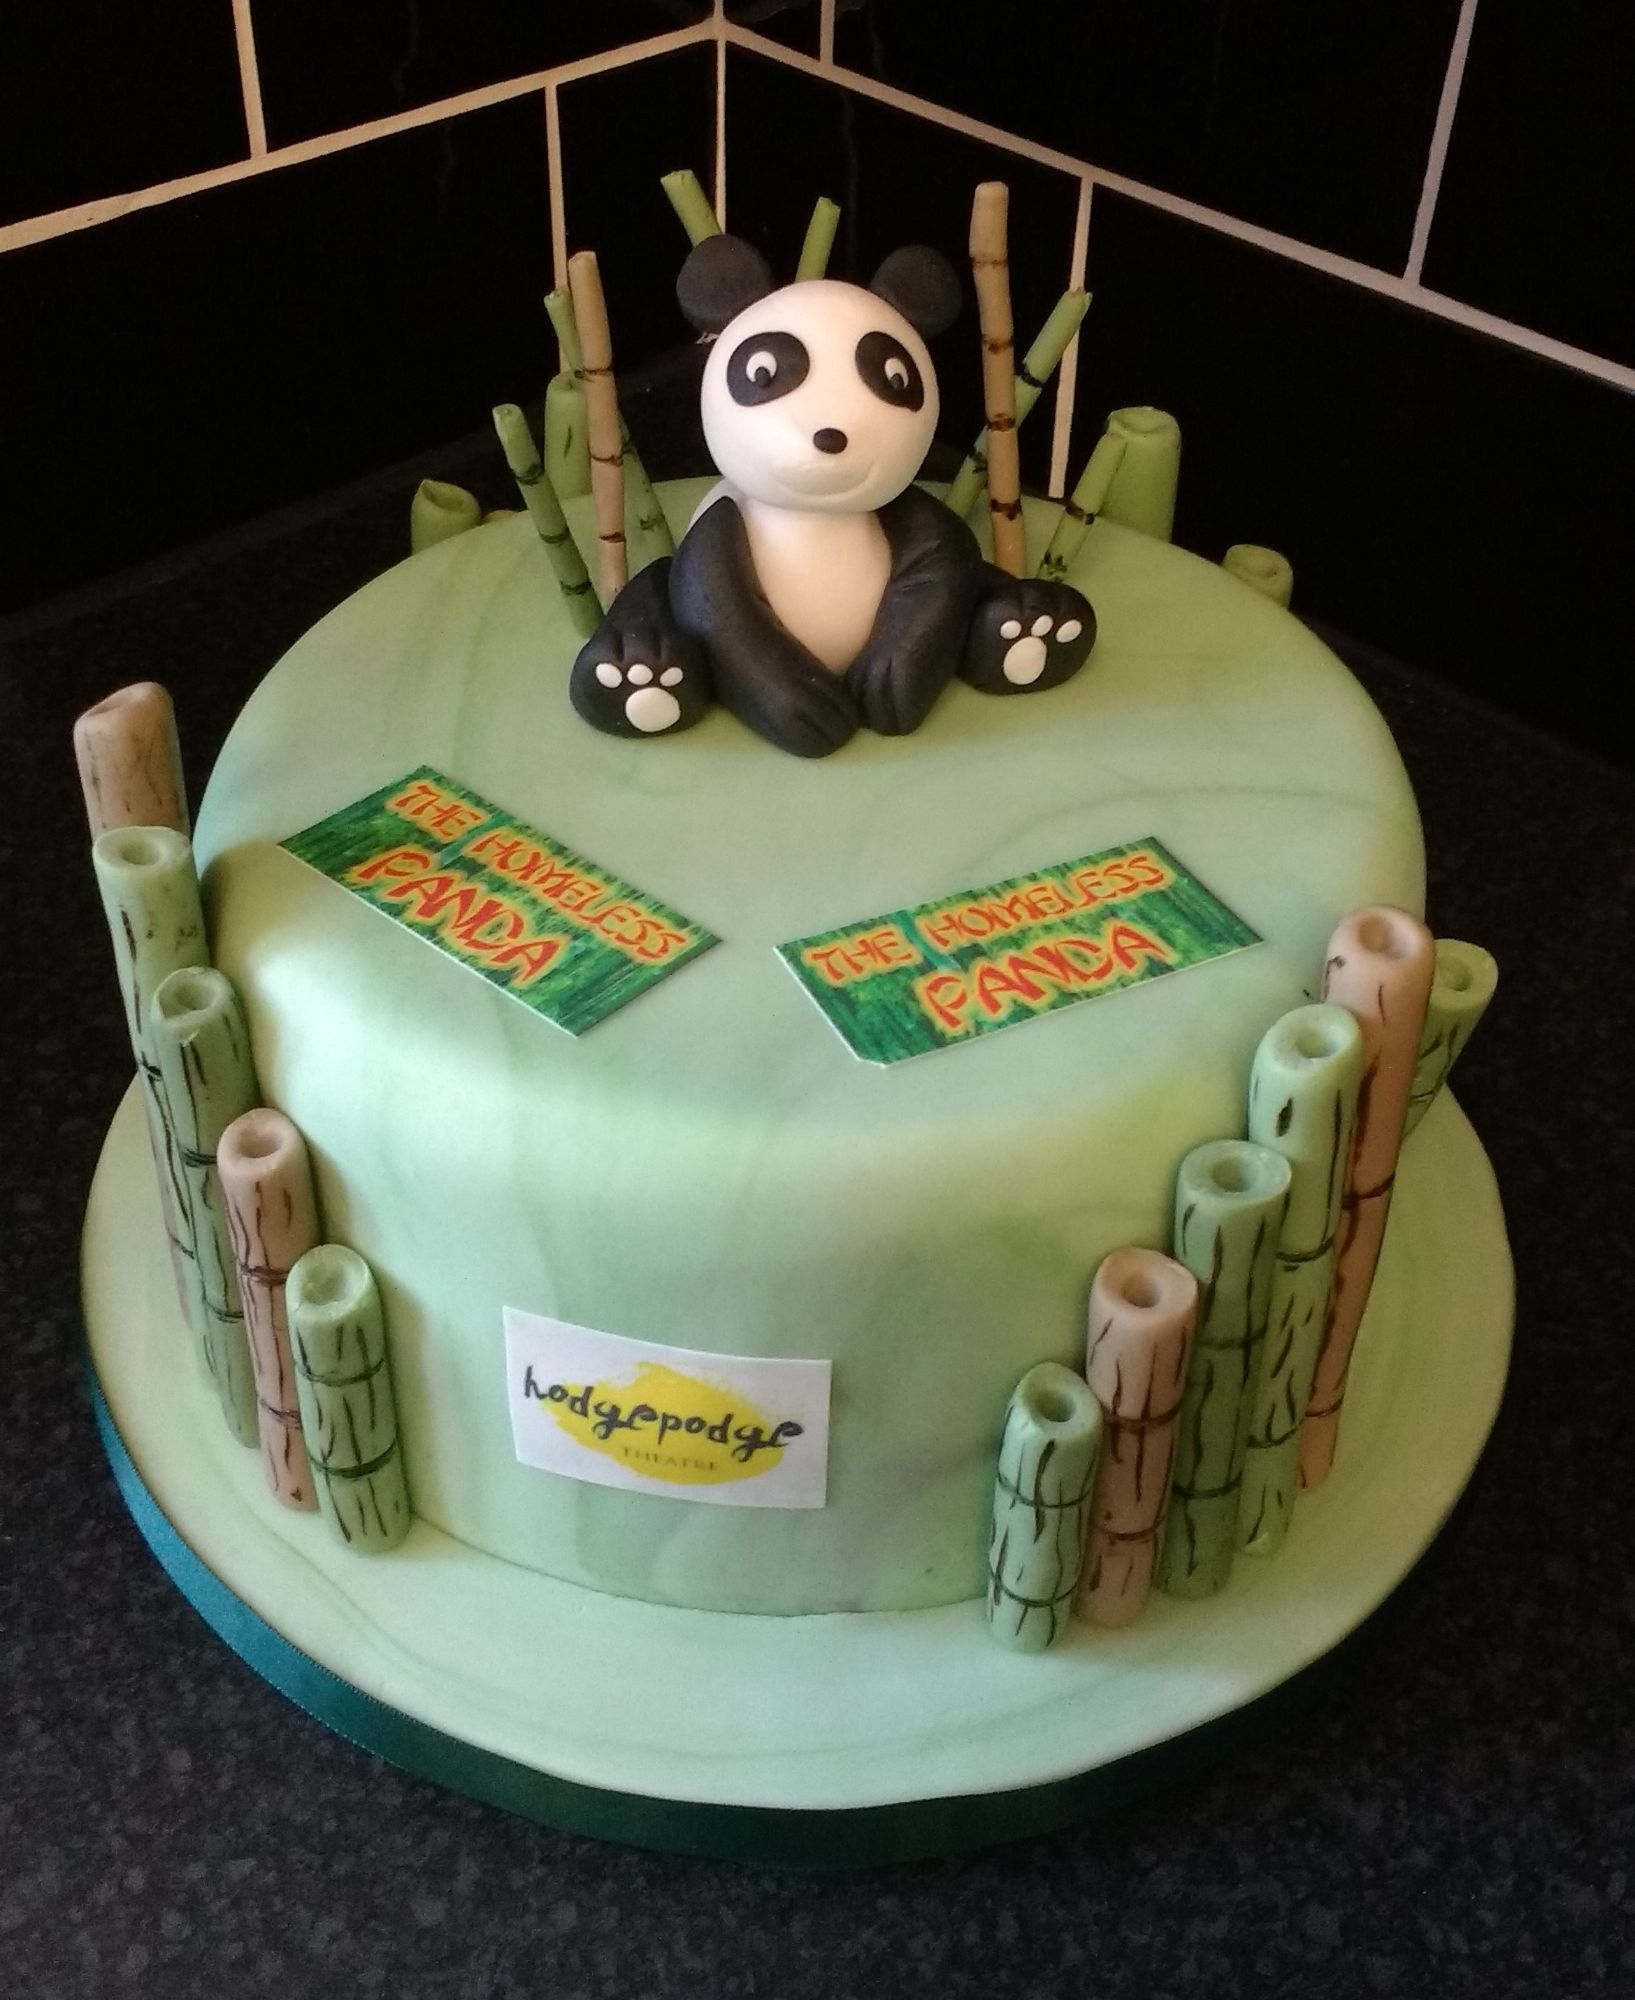 Character Cakes for Special Occasions